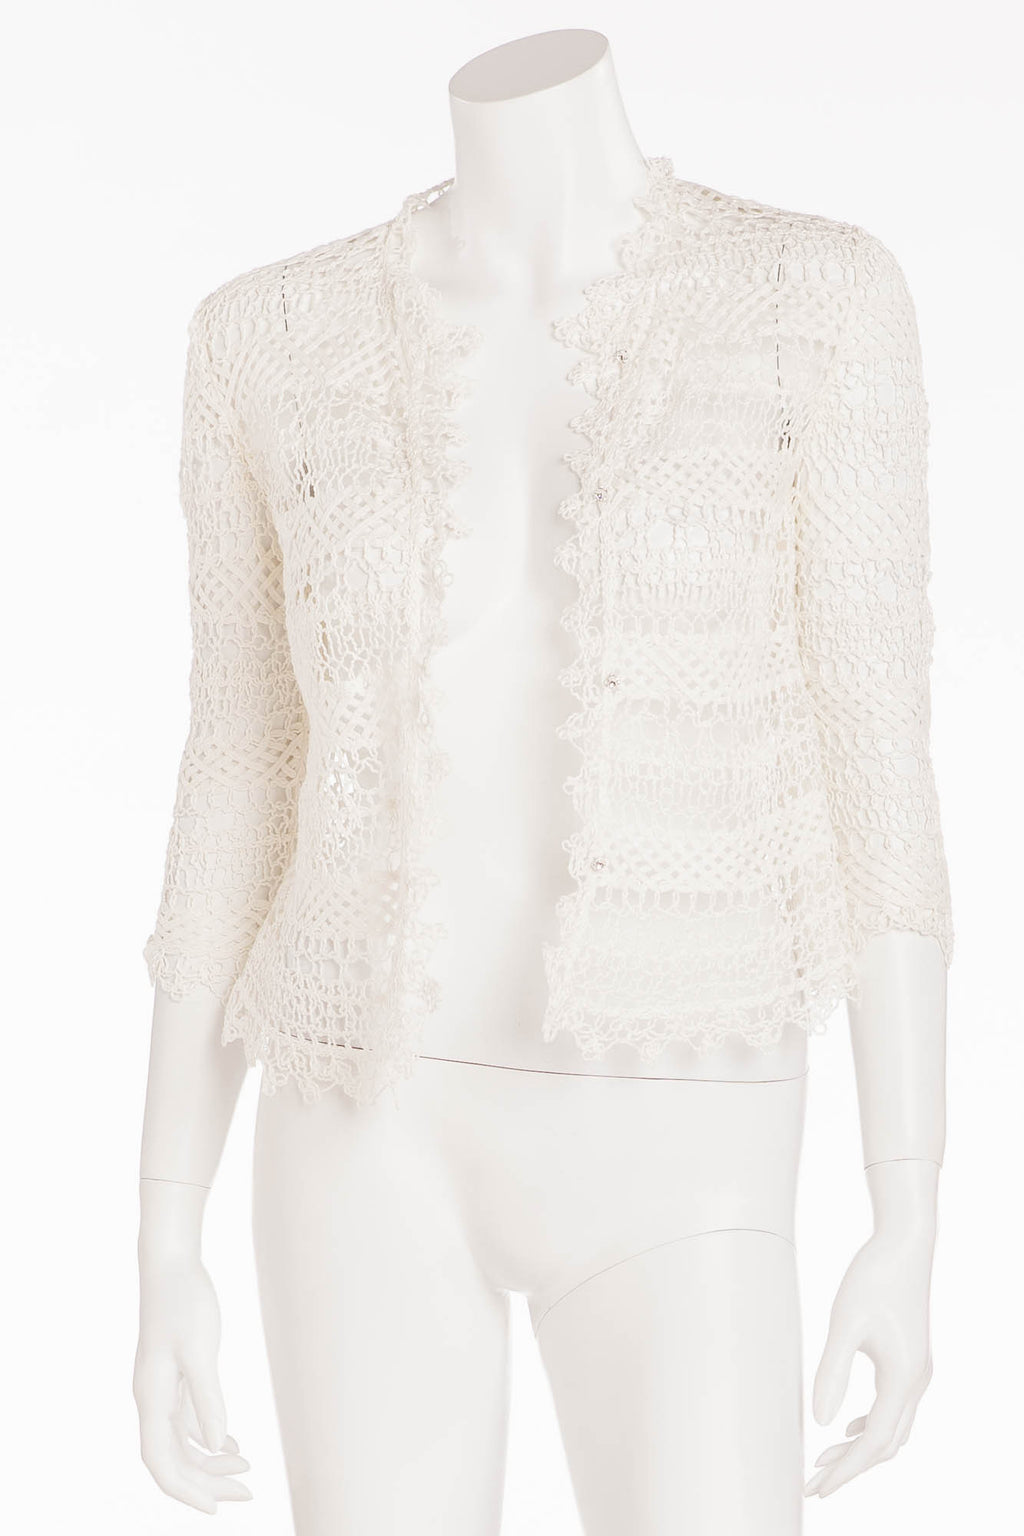 Valentino - White Crochet Lace 3/4 Sleeve Button Up Jacket - IT 42